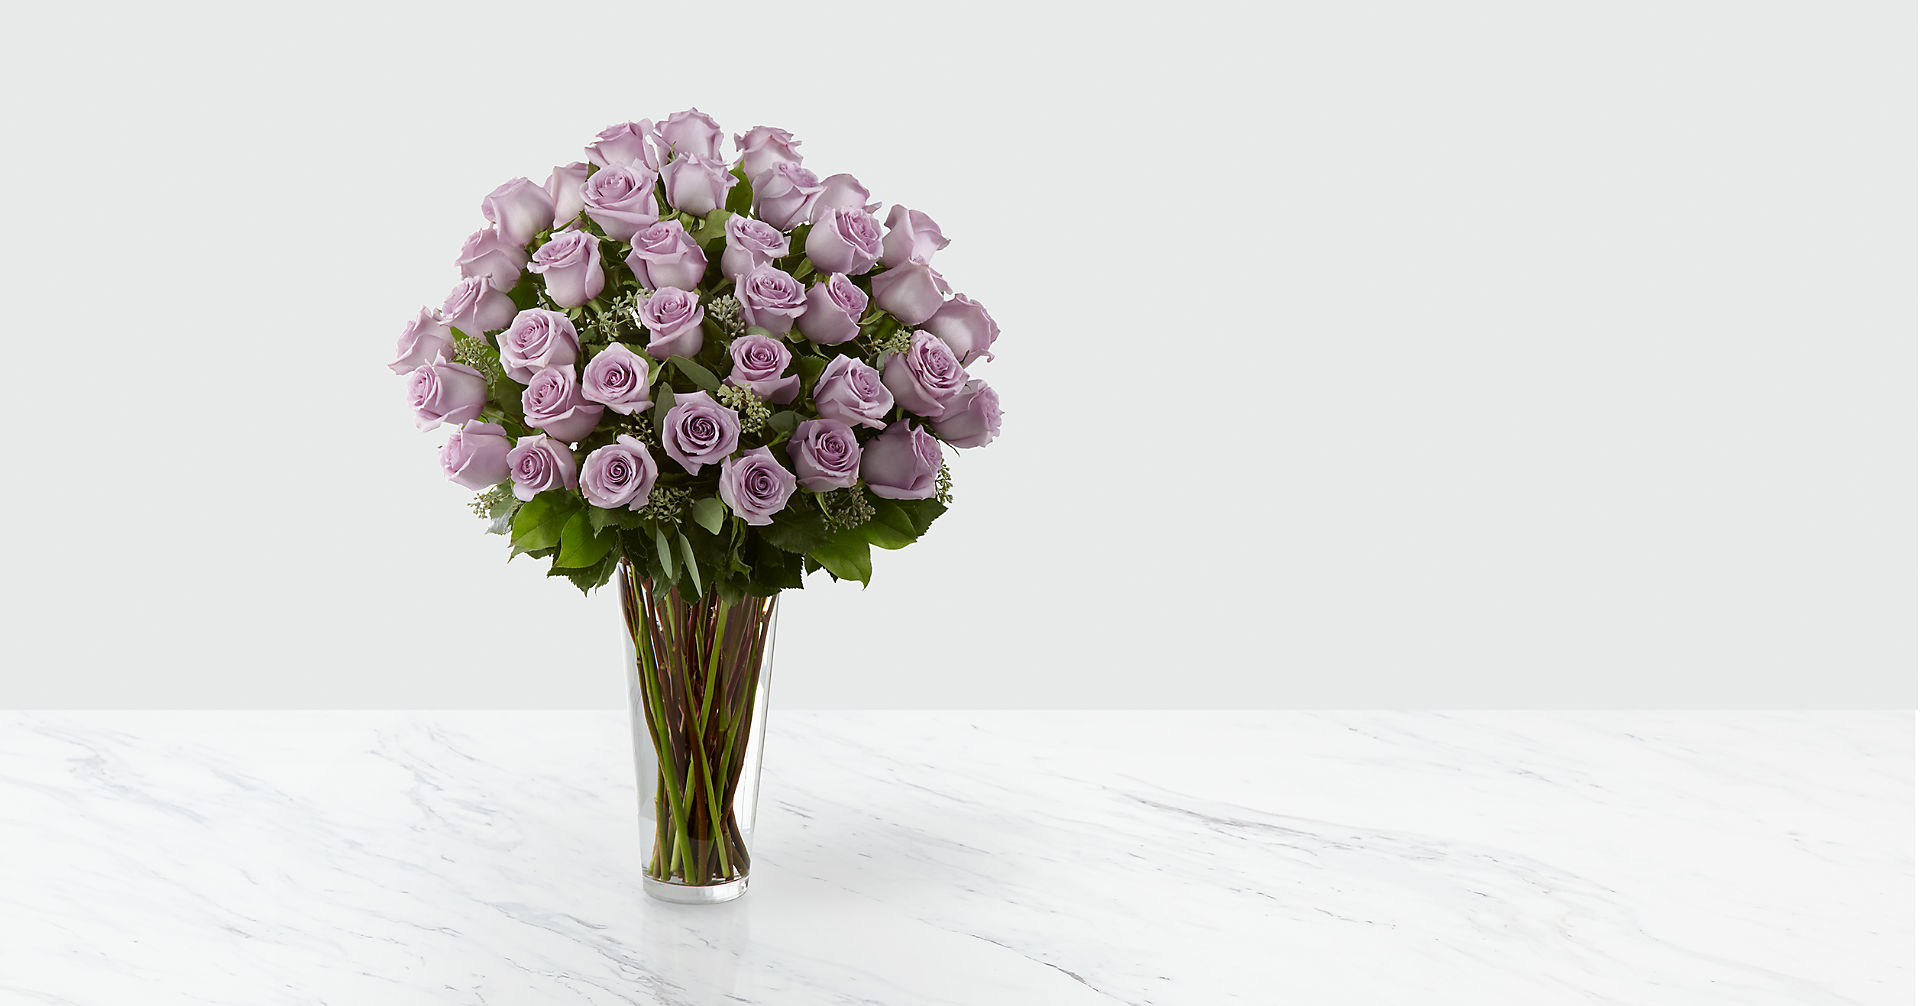 The Lavender Rose Bouquet - 36 Stems - VASE INCLUDED - Image 1 Of 2